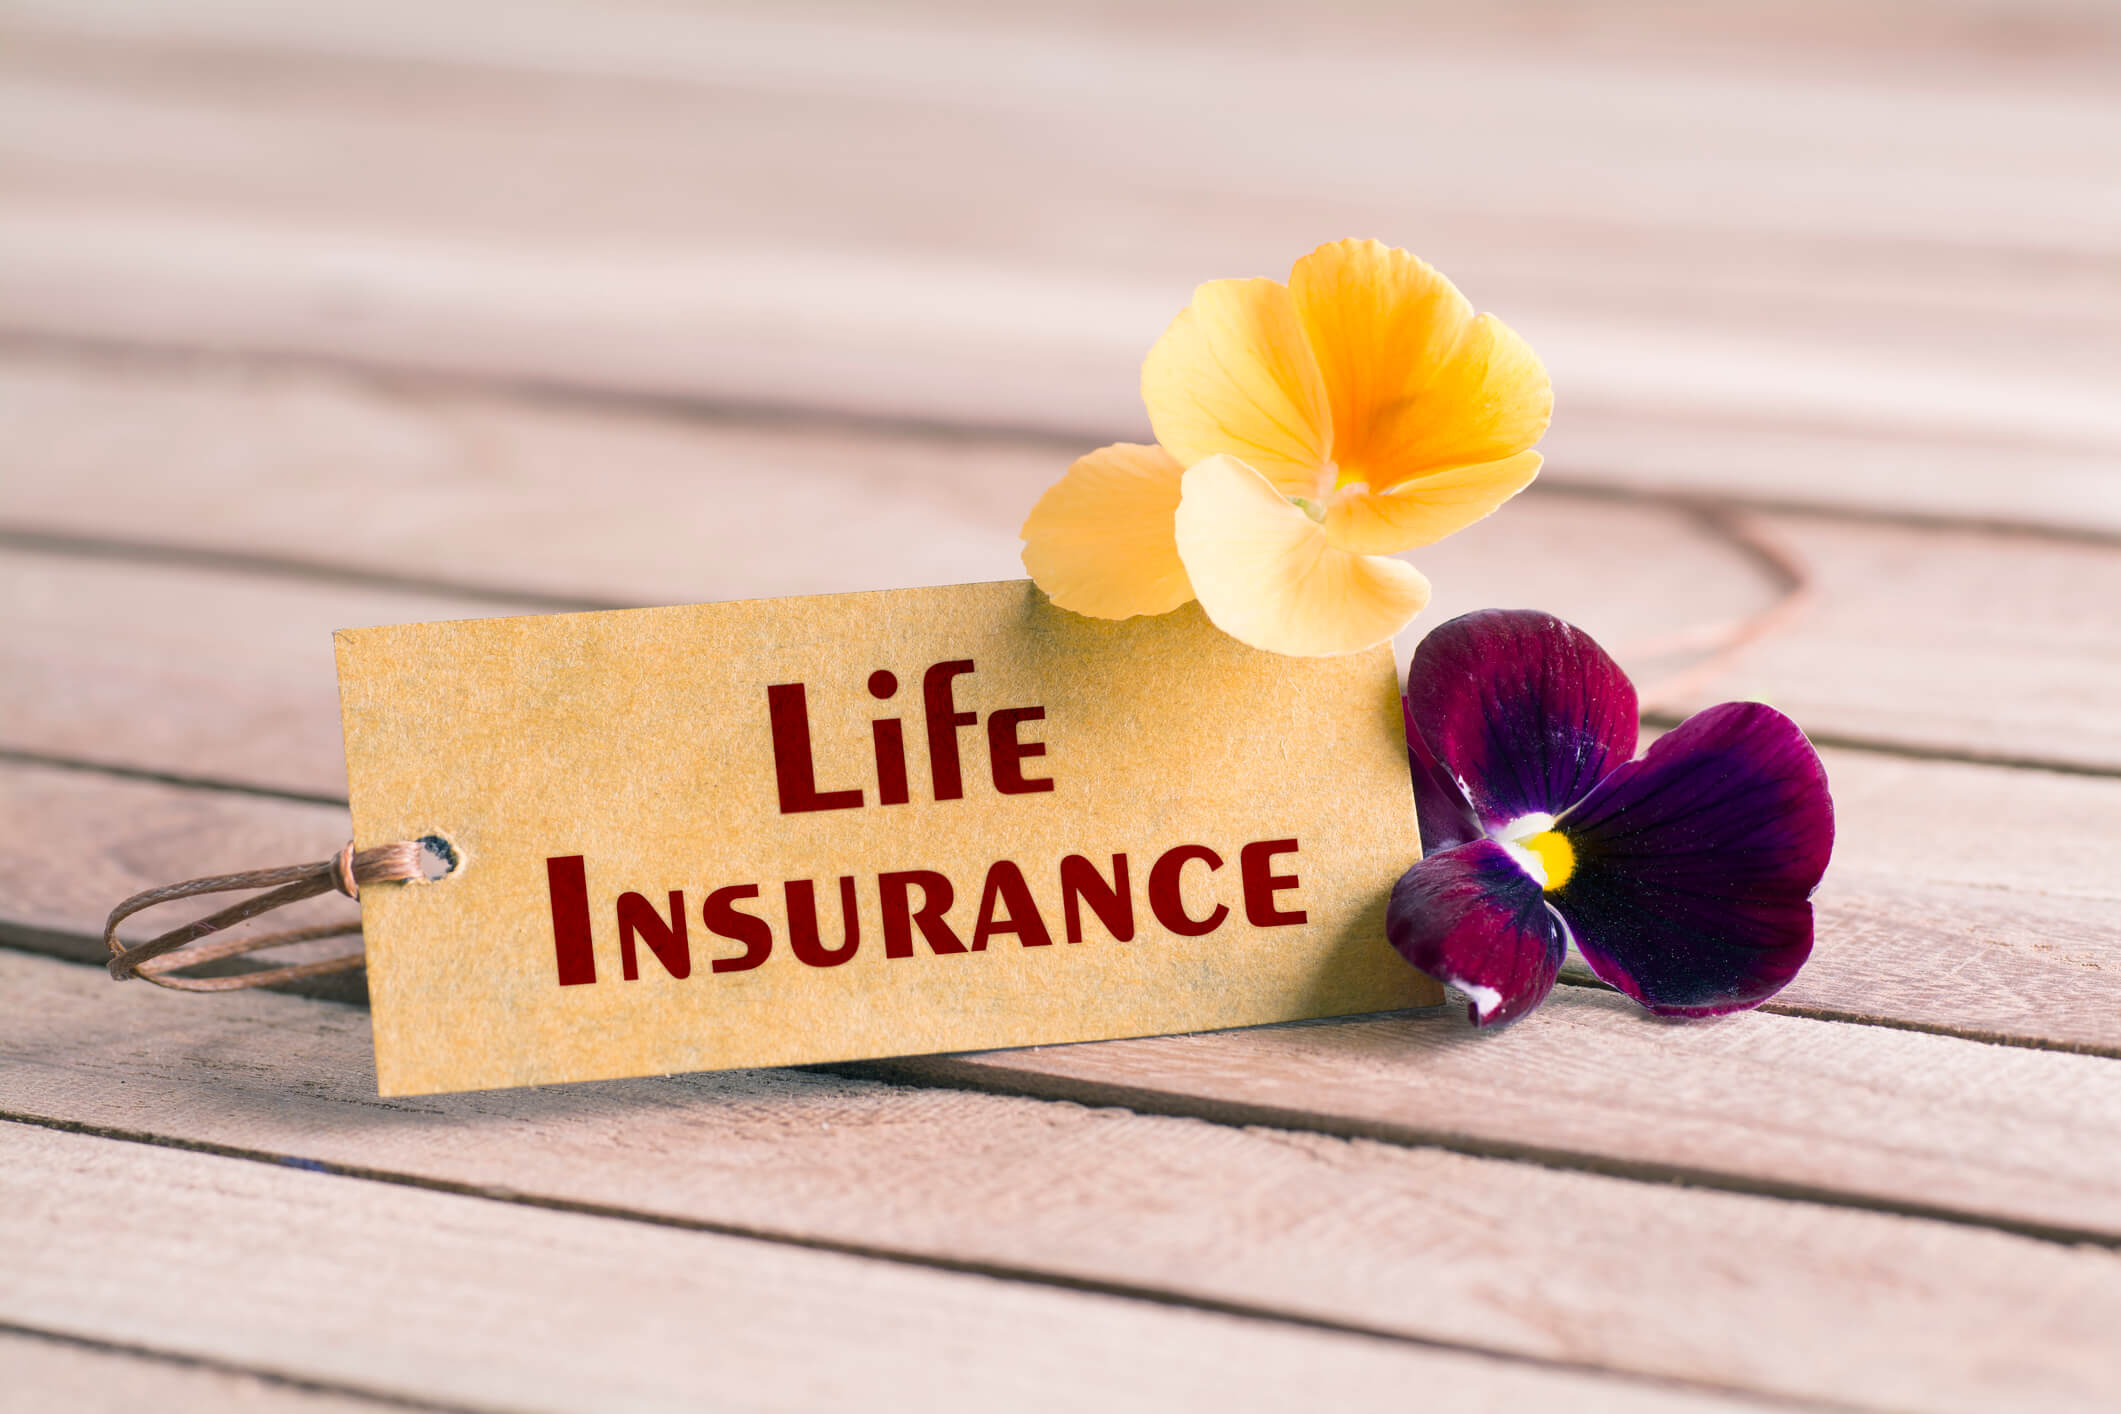 Life insurance tag with flower on a table